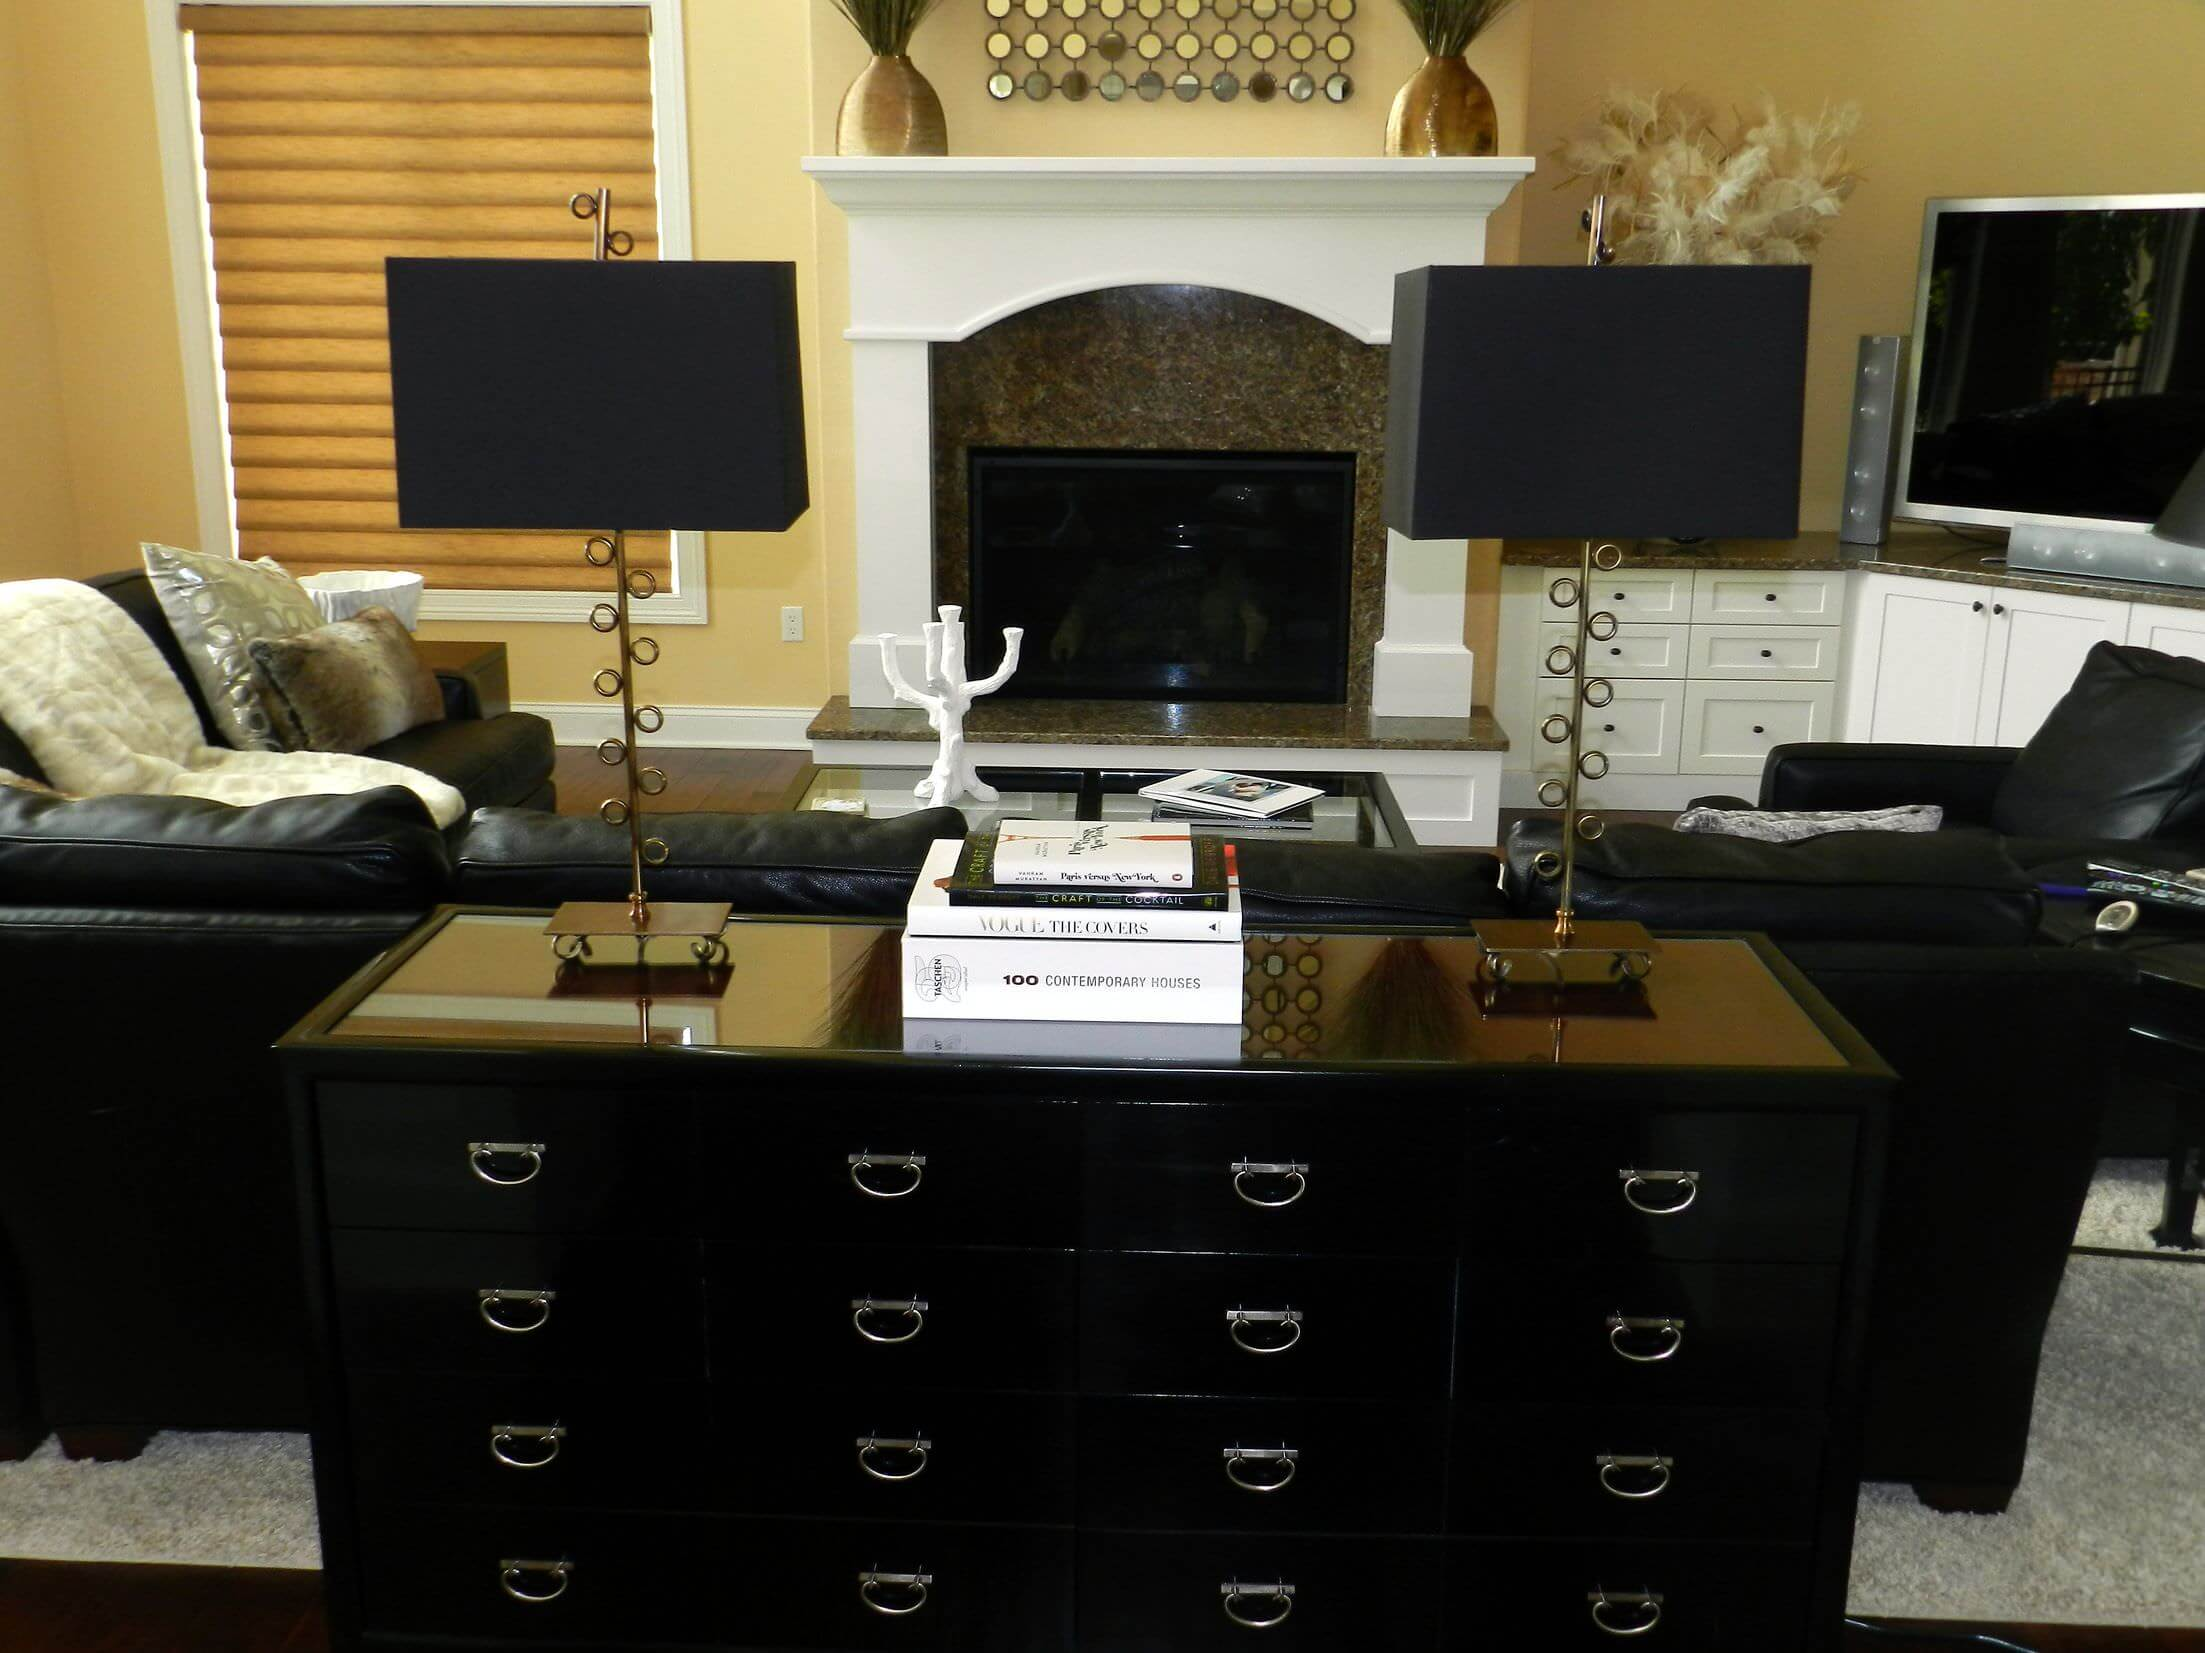 A living room featuring black leather seats and a stylish table cabinet at the back.